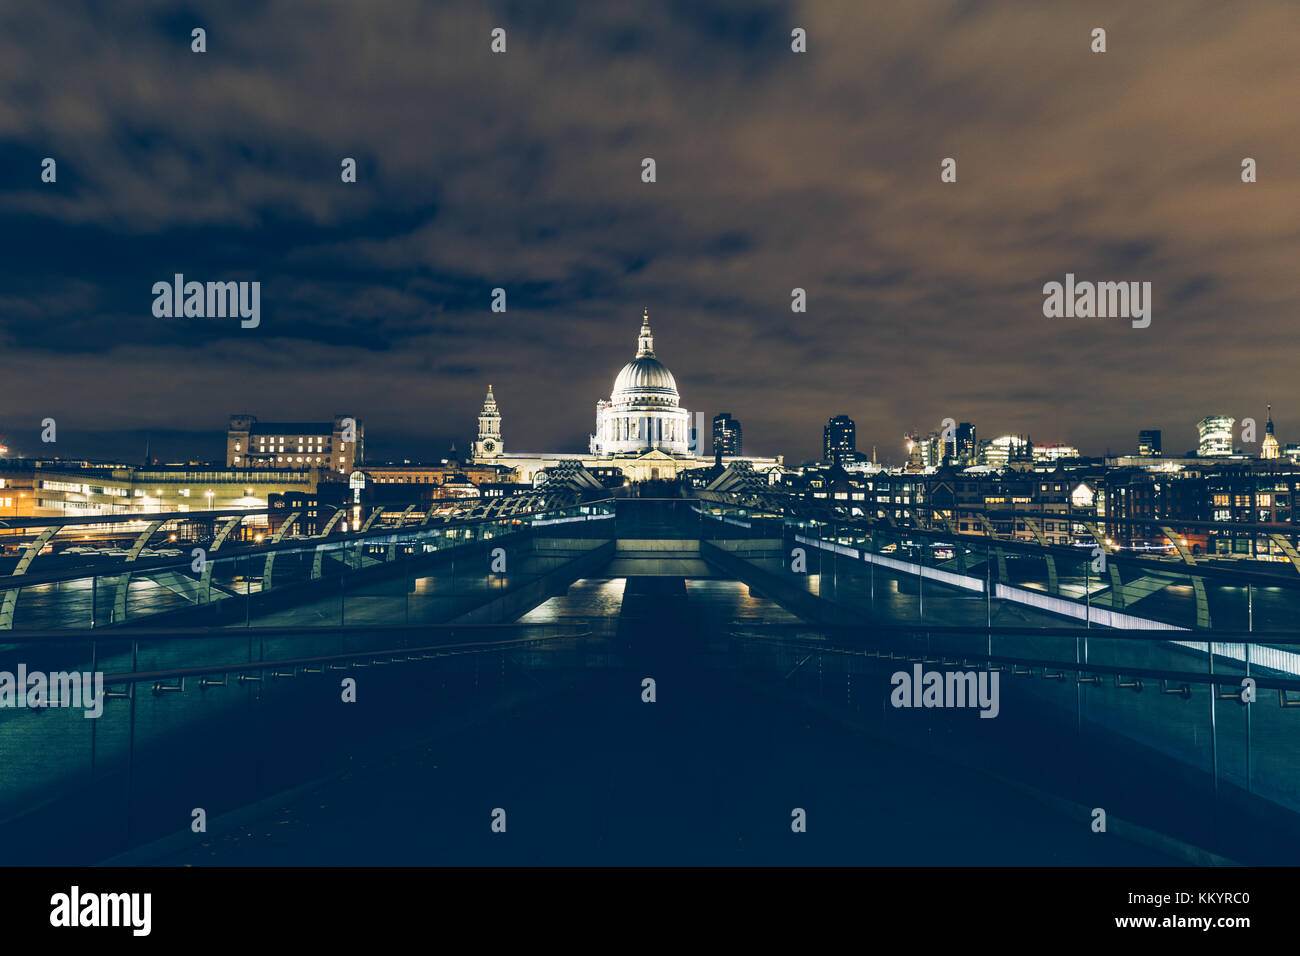 London exposure of modern London skyline with Millennium Bridge and St Paul's Cathedral - Stock Image